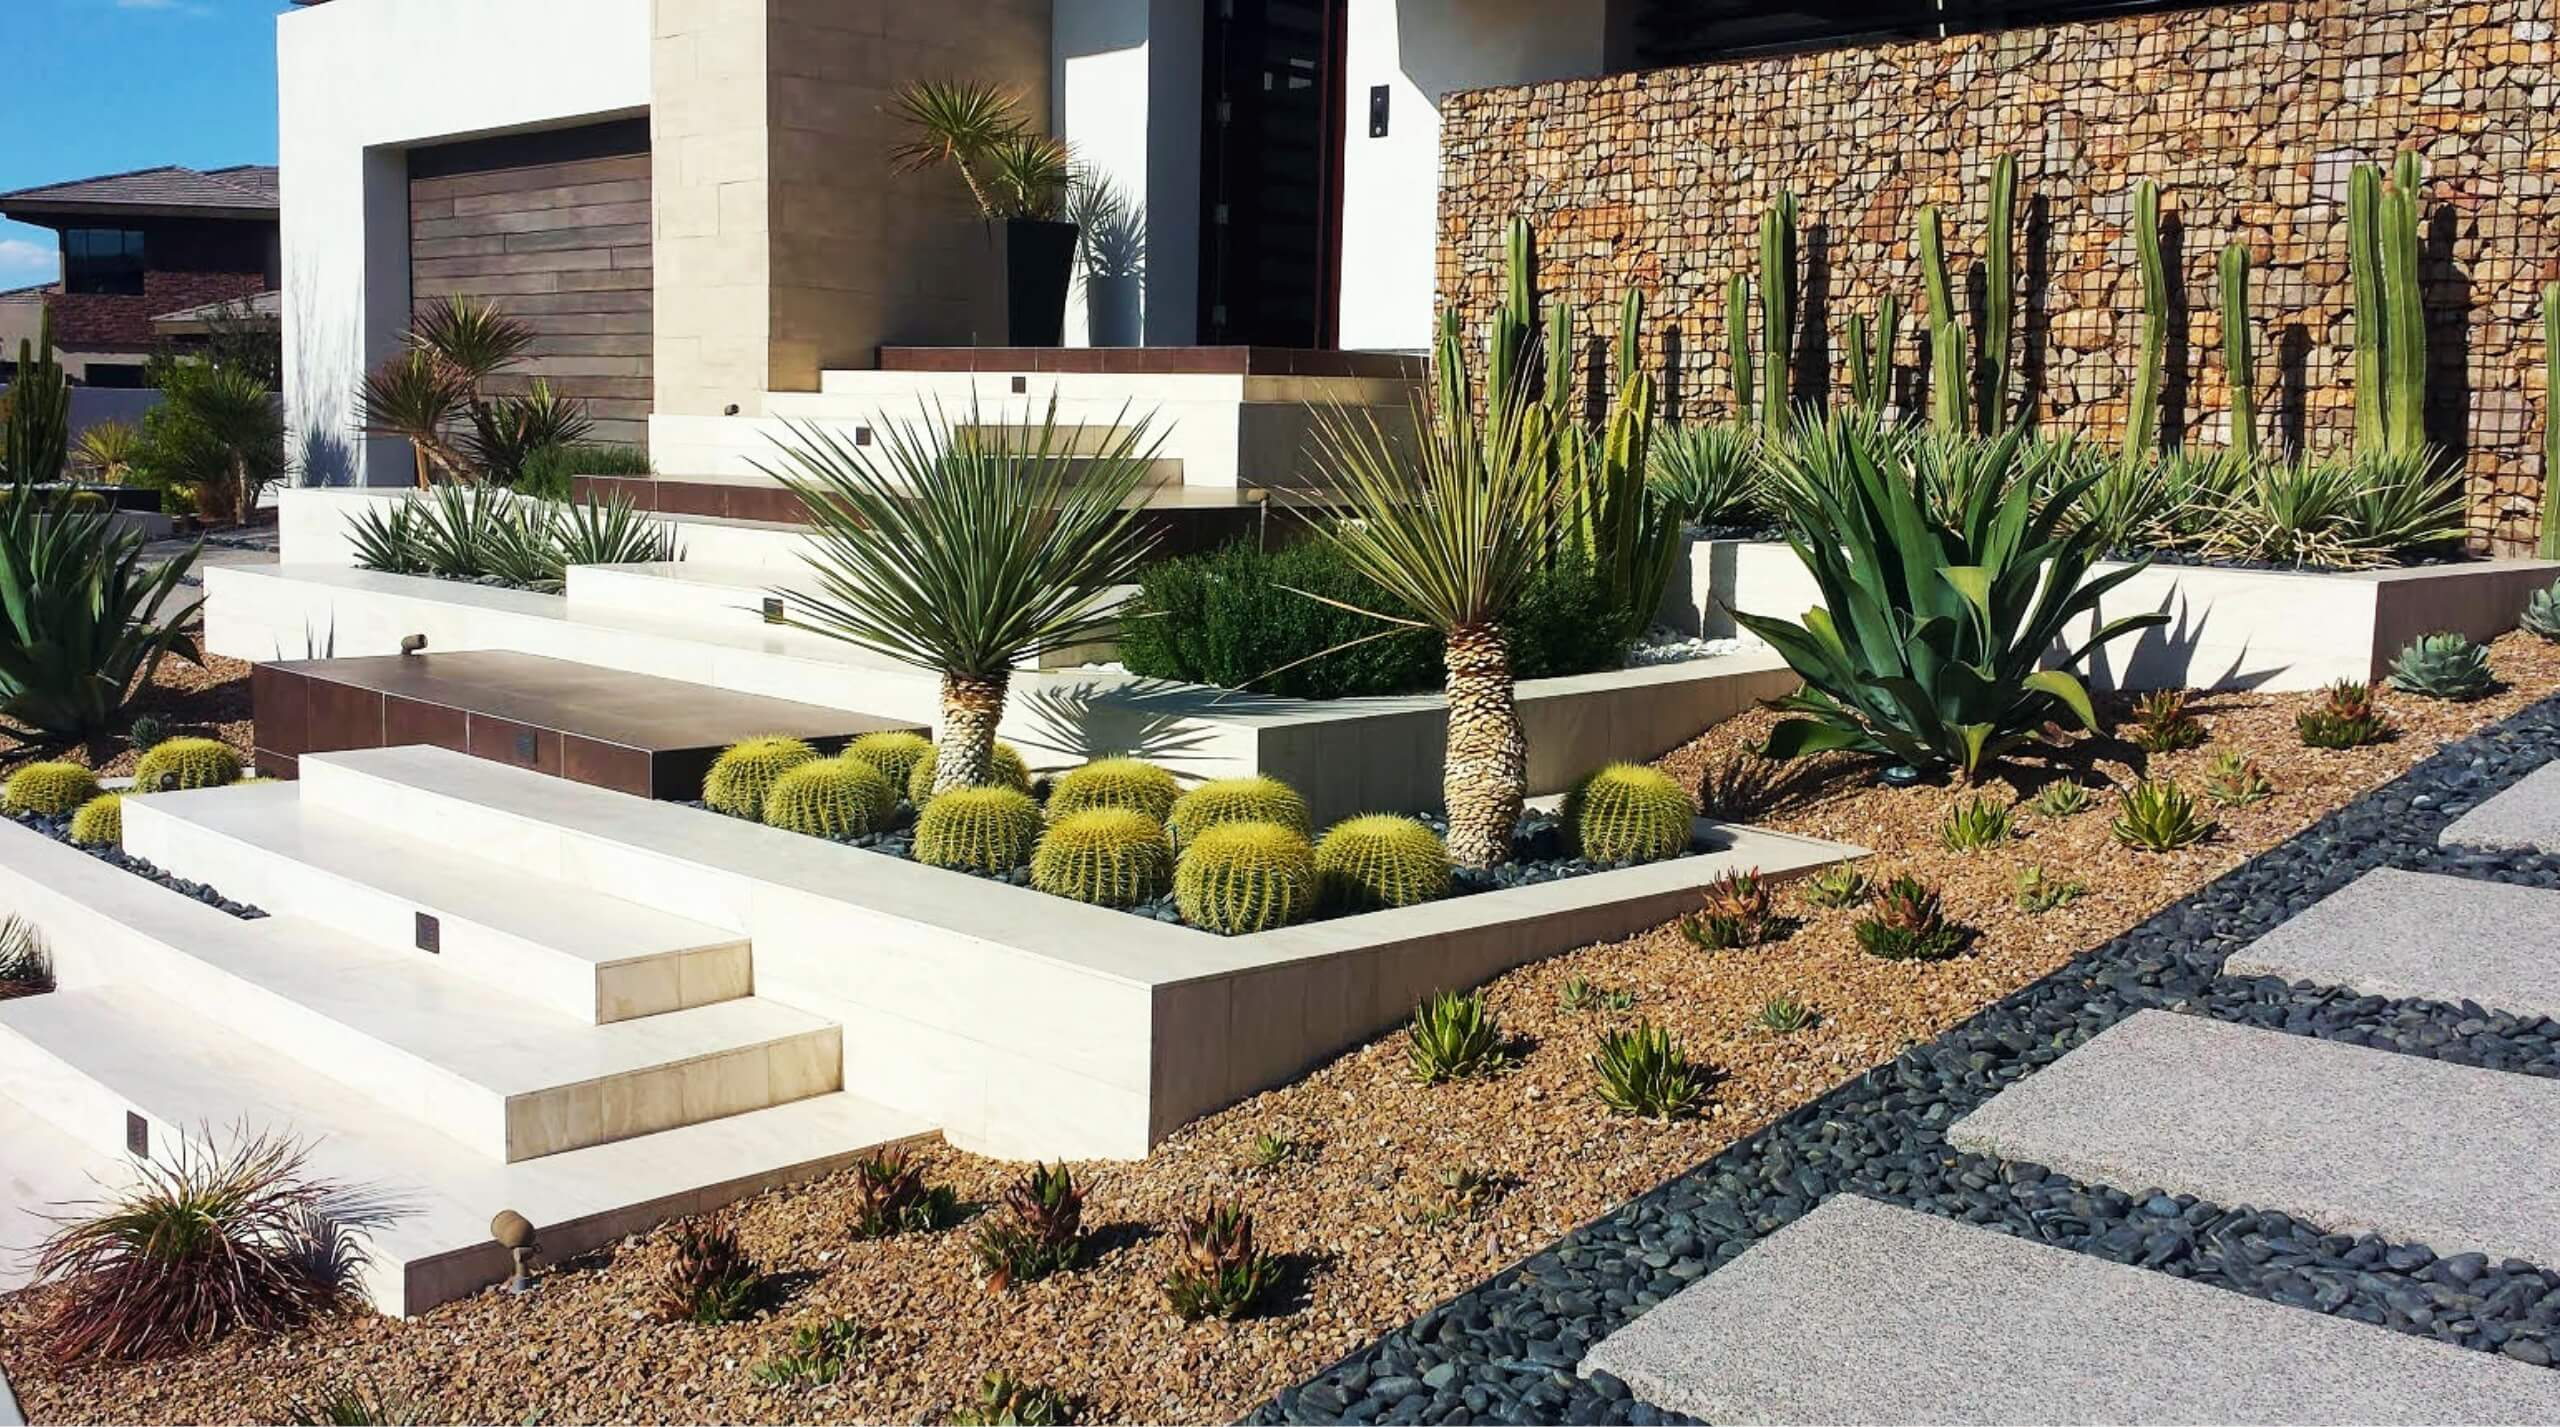 Landscape design & construction for commercial & residential properties in Las Vegas